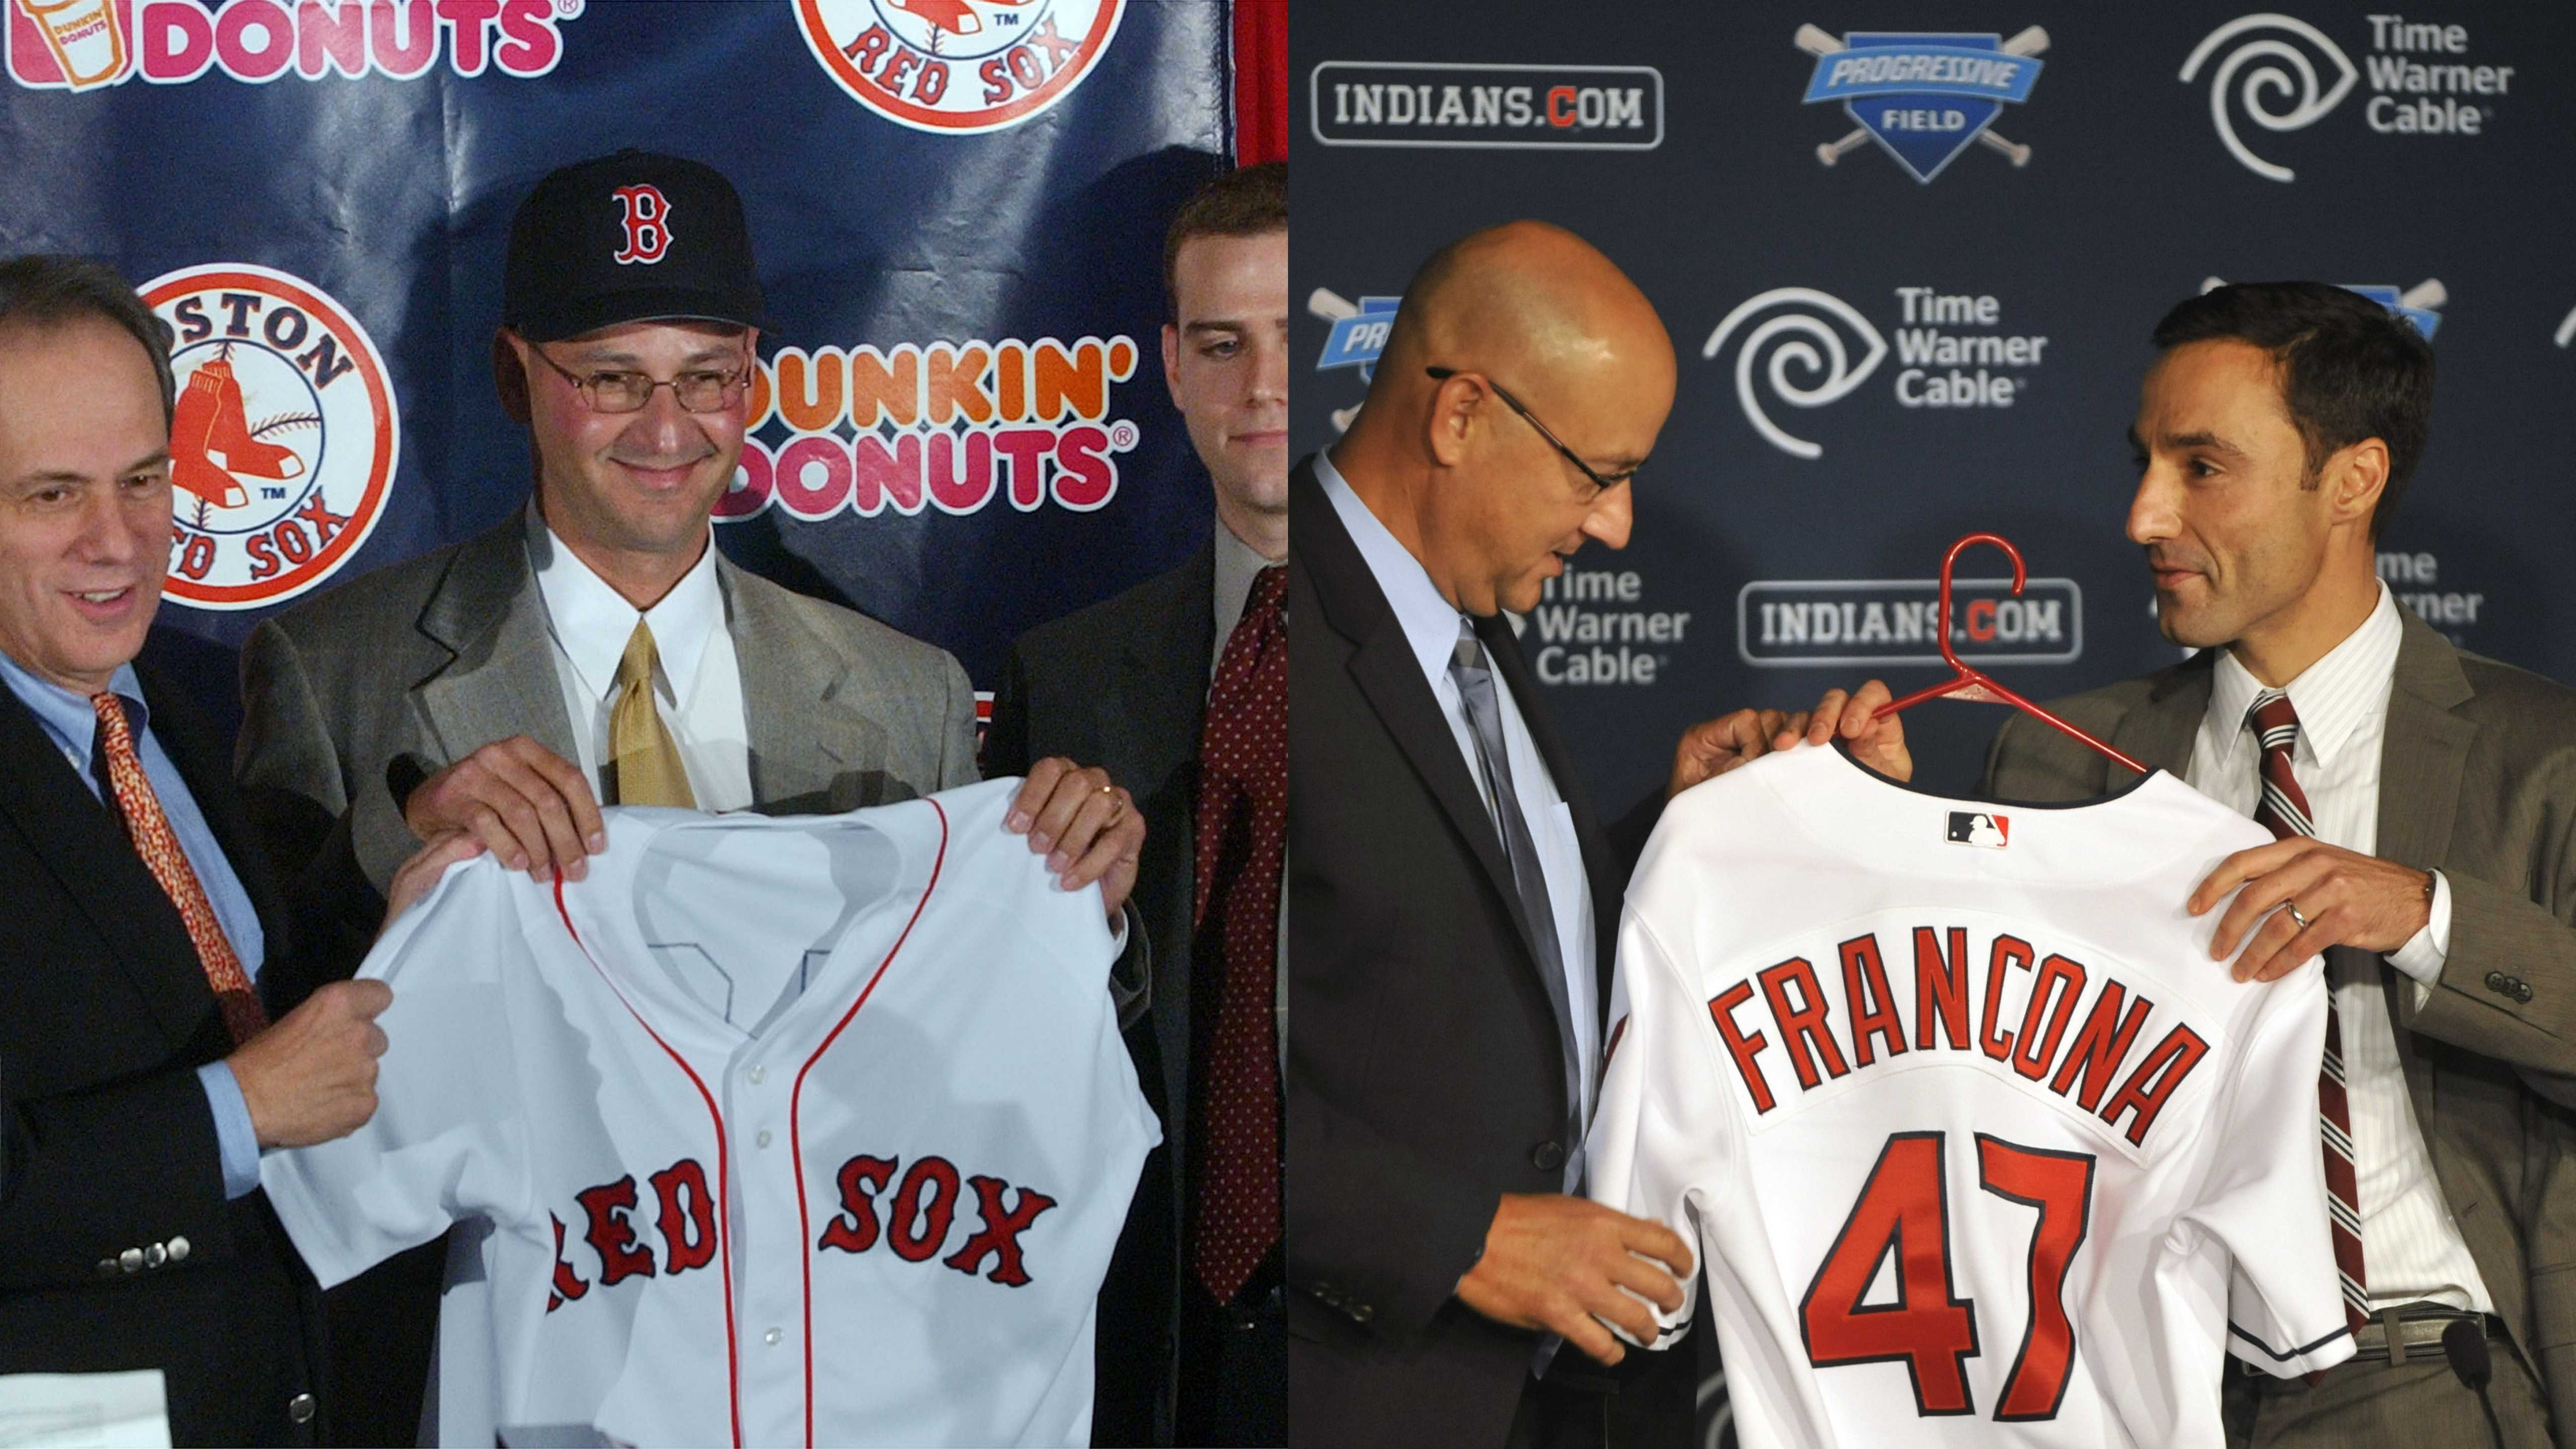 Leftt:Terry Francona shows his new Boston Red Sox uniform during a news conference at Fenway Park in Boston, Thursday, Dec. 4, 2003. Right: Cleveland Indians general manager Chris Antonetti, right, presents new manager Terry Francona with a baseball jersey during a news conference at Progressive Field, Monday, Oct. 8, 2012.